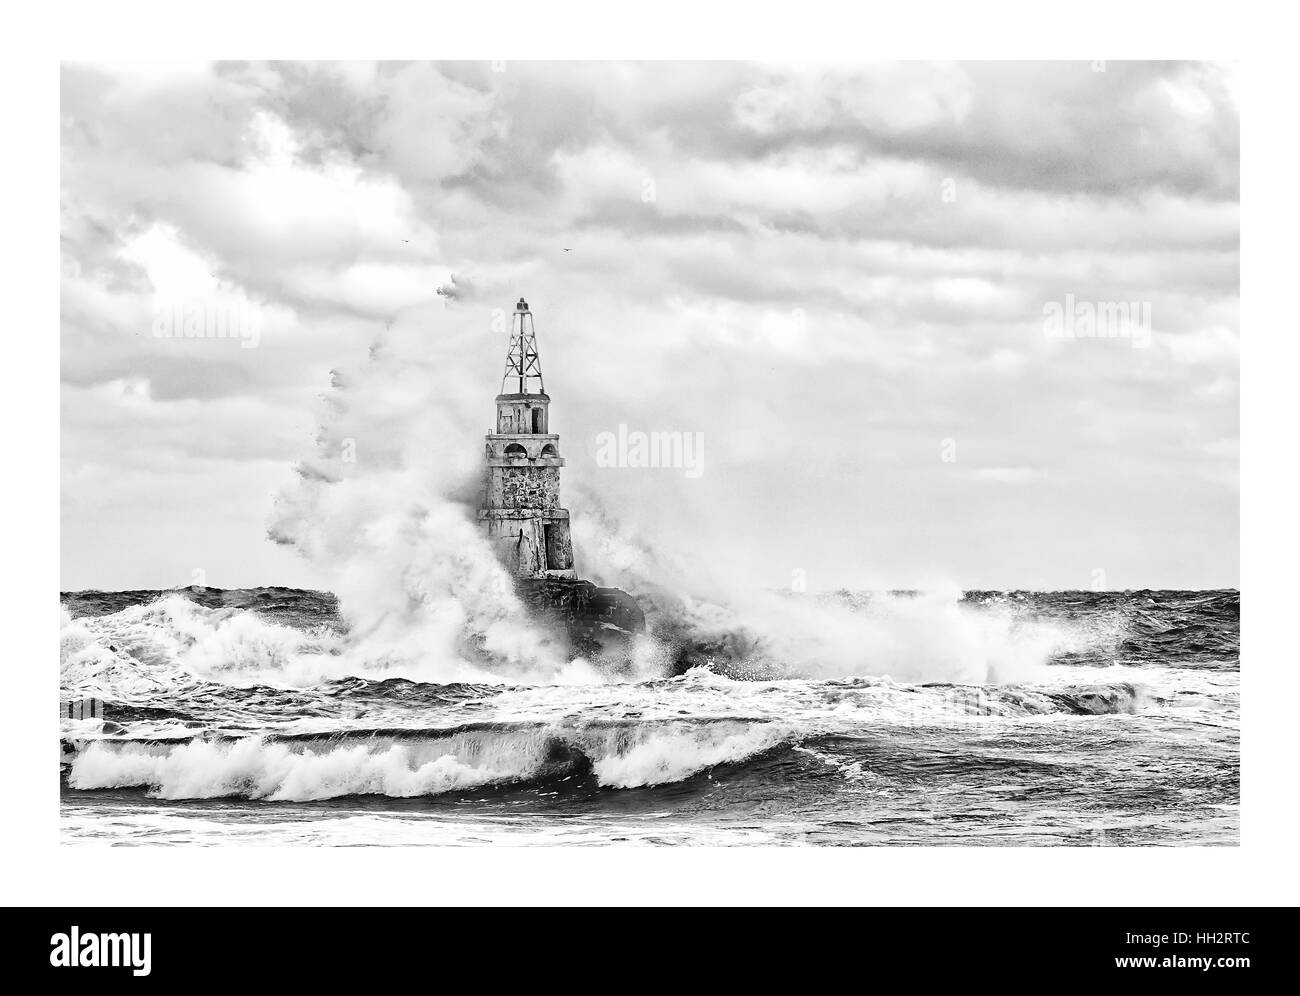 Stormy cloudy day. Dramatic sky and huge waves at the Lighthouse - Stock Image